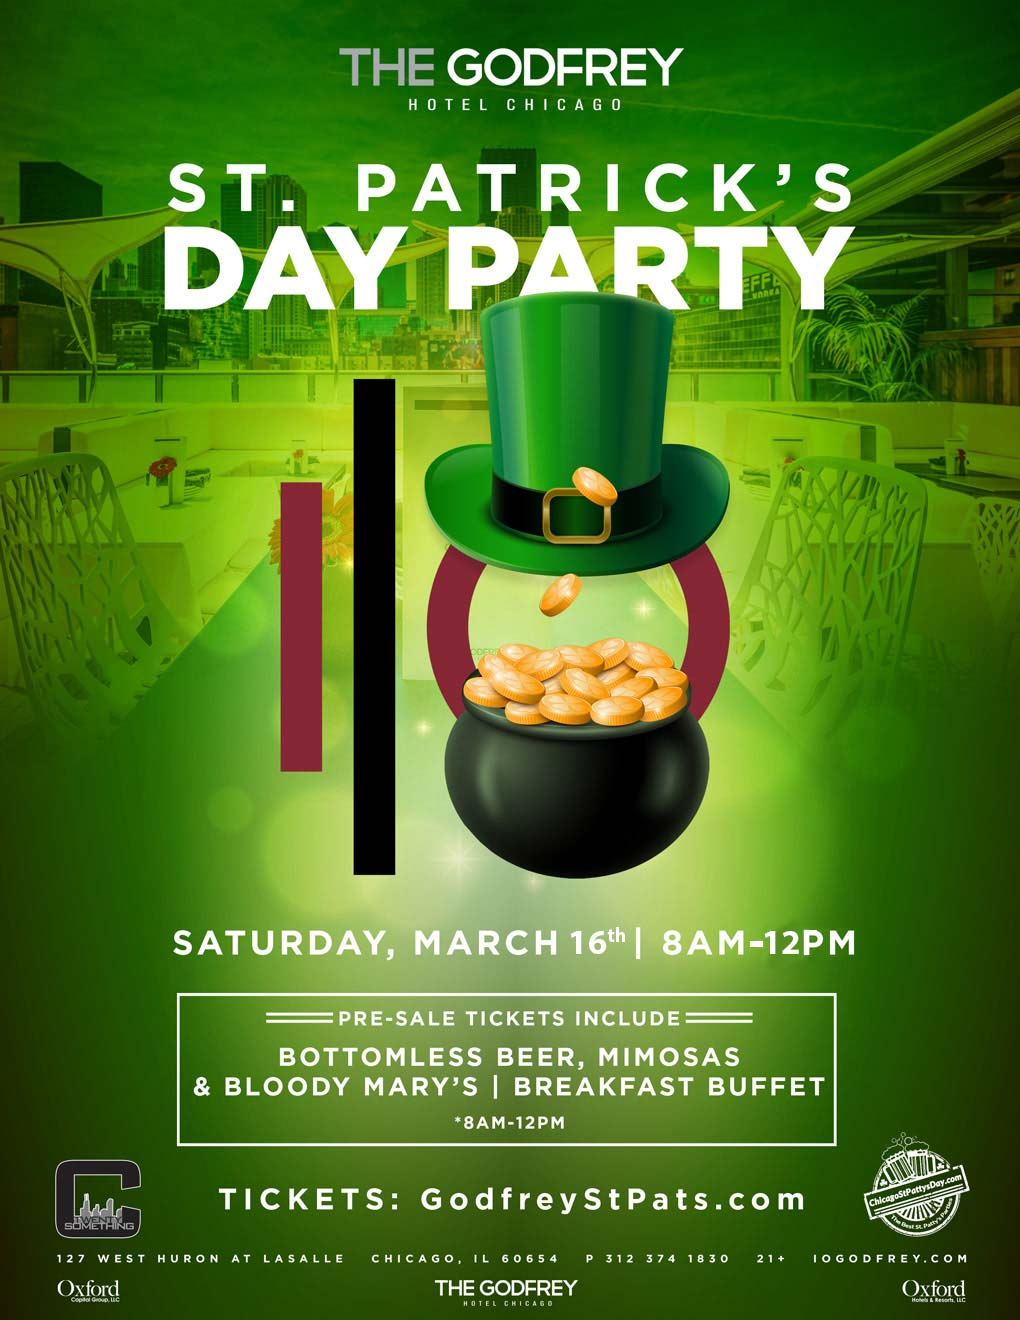 The Godfrey Hotel Chicago St. Patrick's Day Party - Celebrate St. Patrick's Day at one of the hottest spots in Chicago!  Tickets include bottomless beer, mimosas and Bloody Mary's as well as a breakfast buffet!